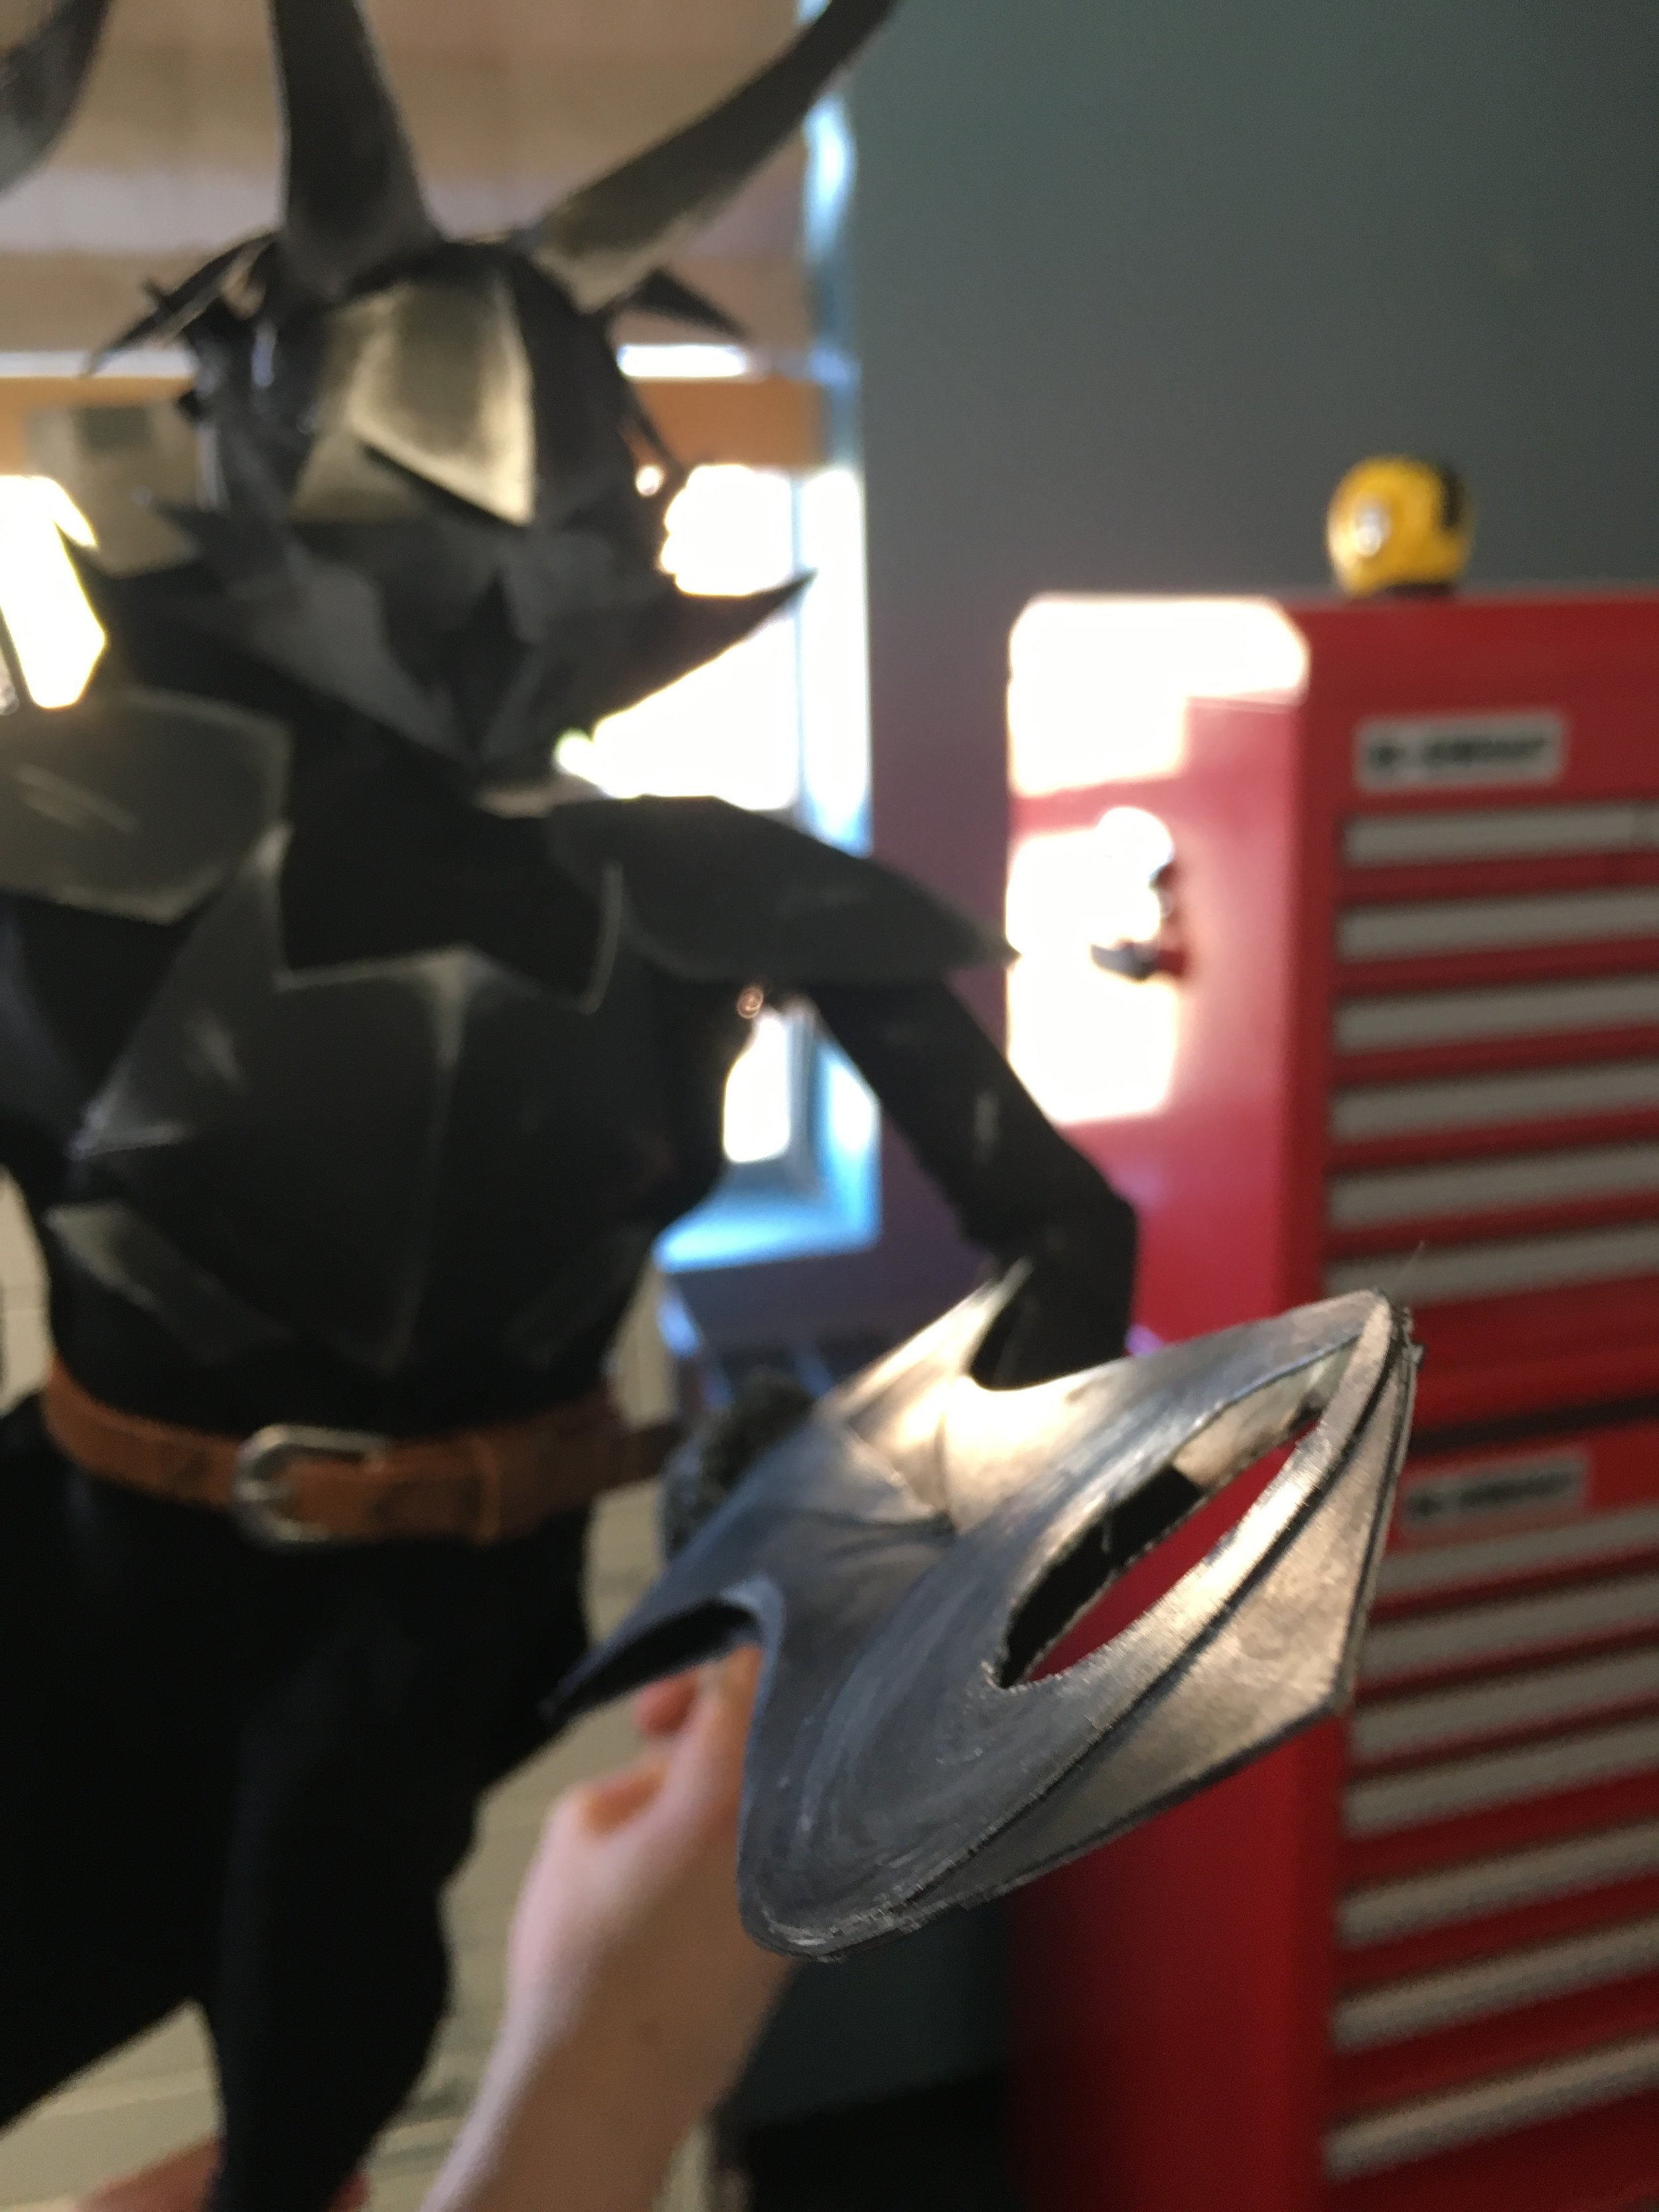 Amazing black knight puppet who didn't make the final cut...